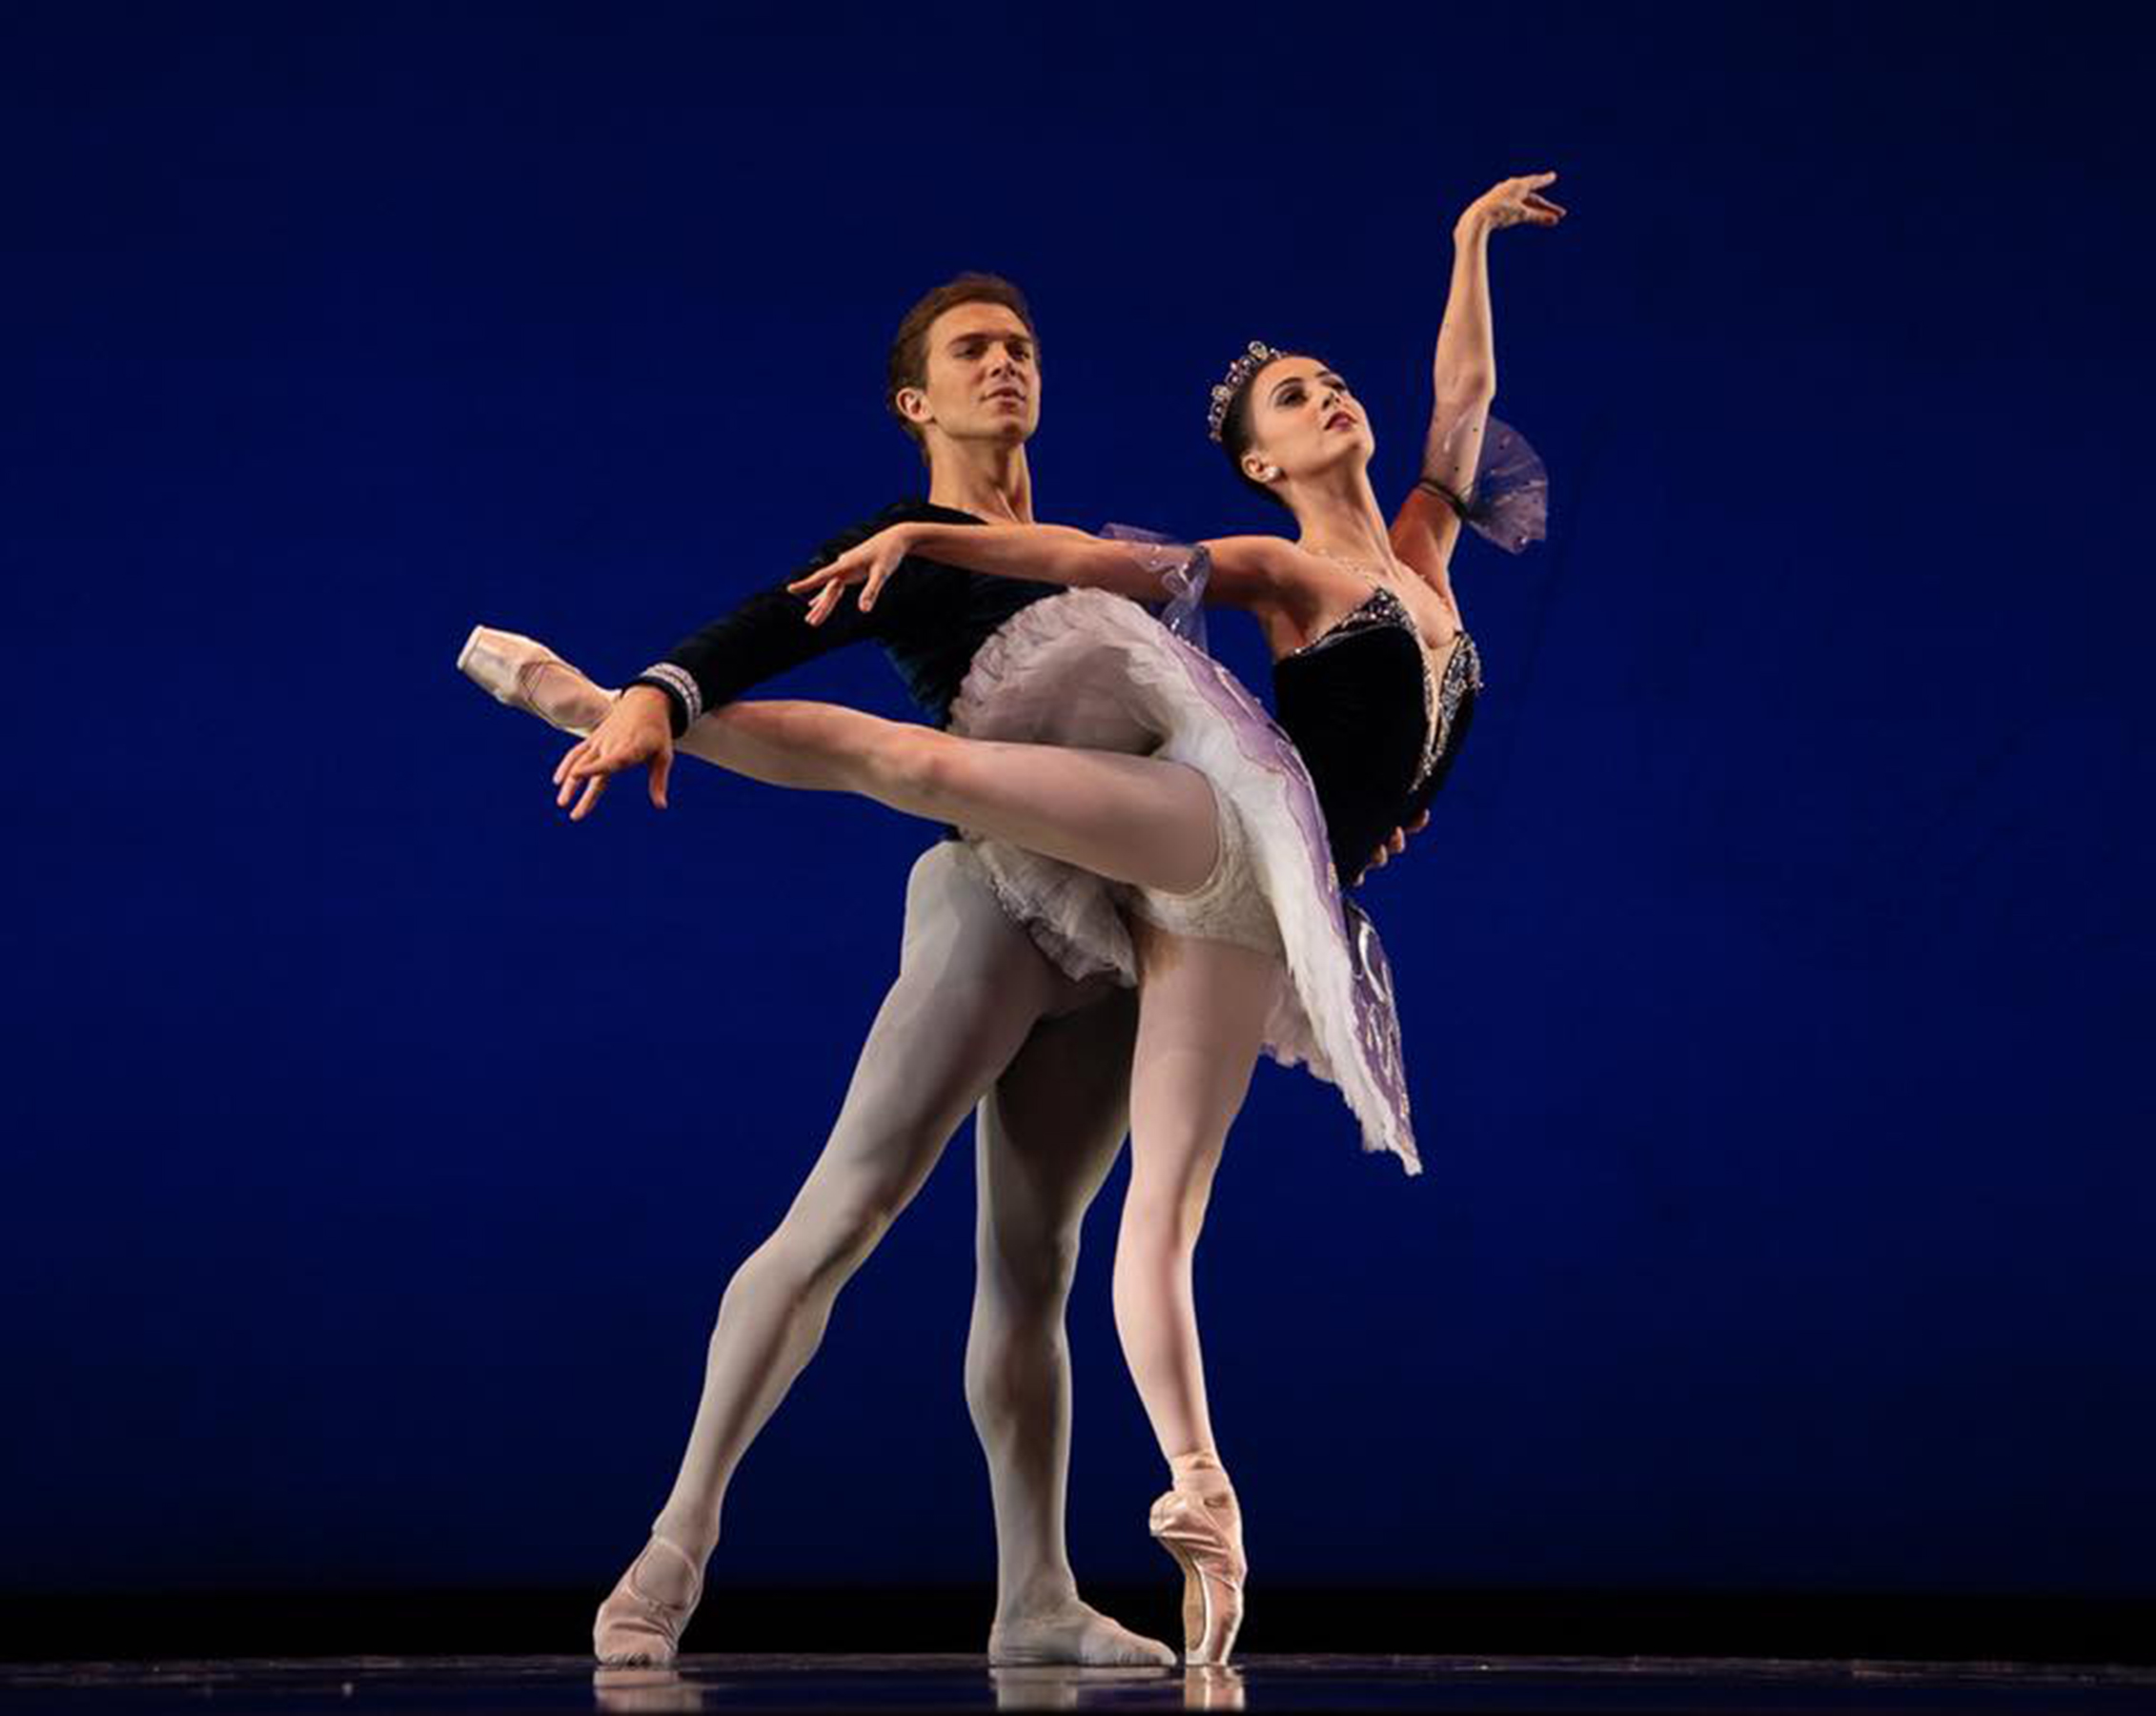 Ballet Manila resident guest principals Katherine Barkman and Joseph Phillips dance the    Grand Pas Classique    in Round III Thursday night. Photo by Richard Finkelstein/ USA IBC